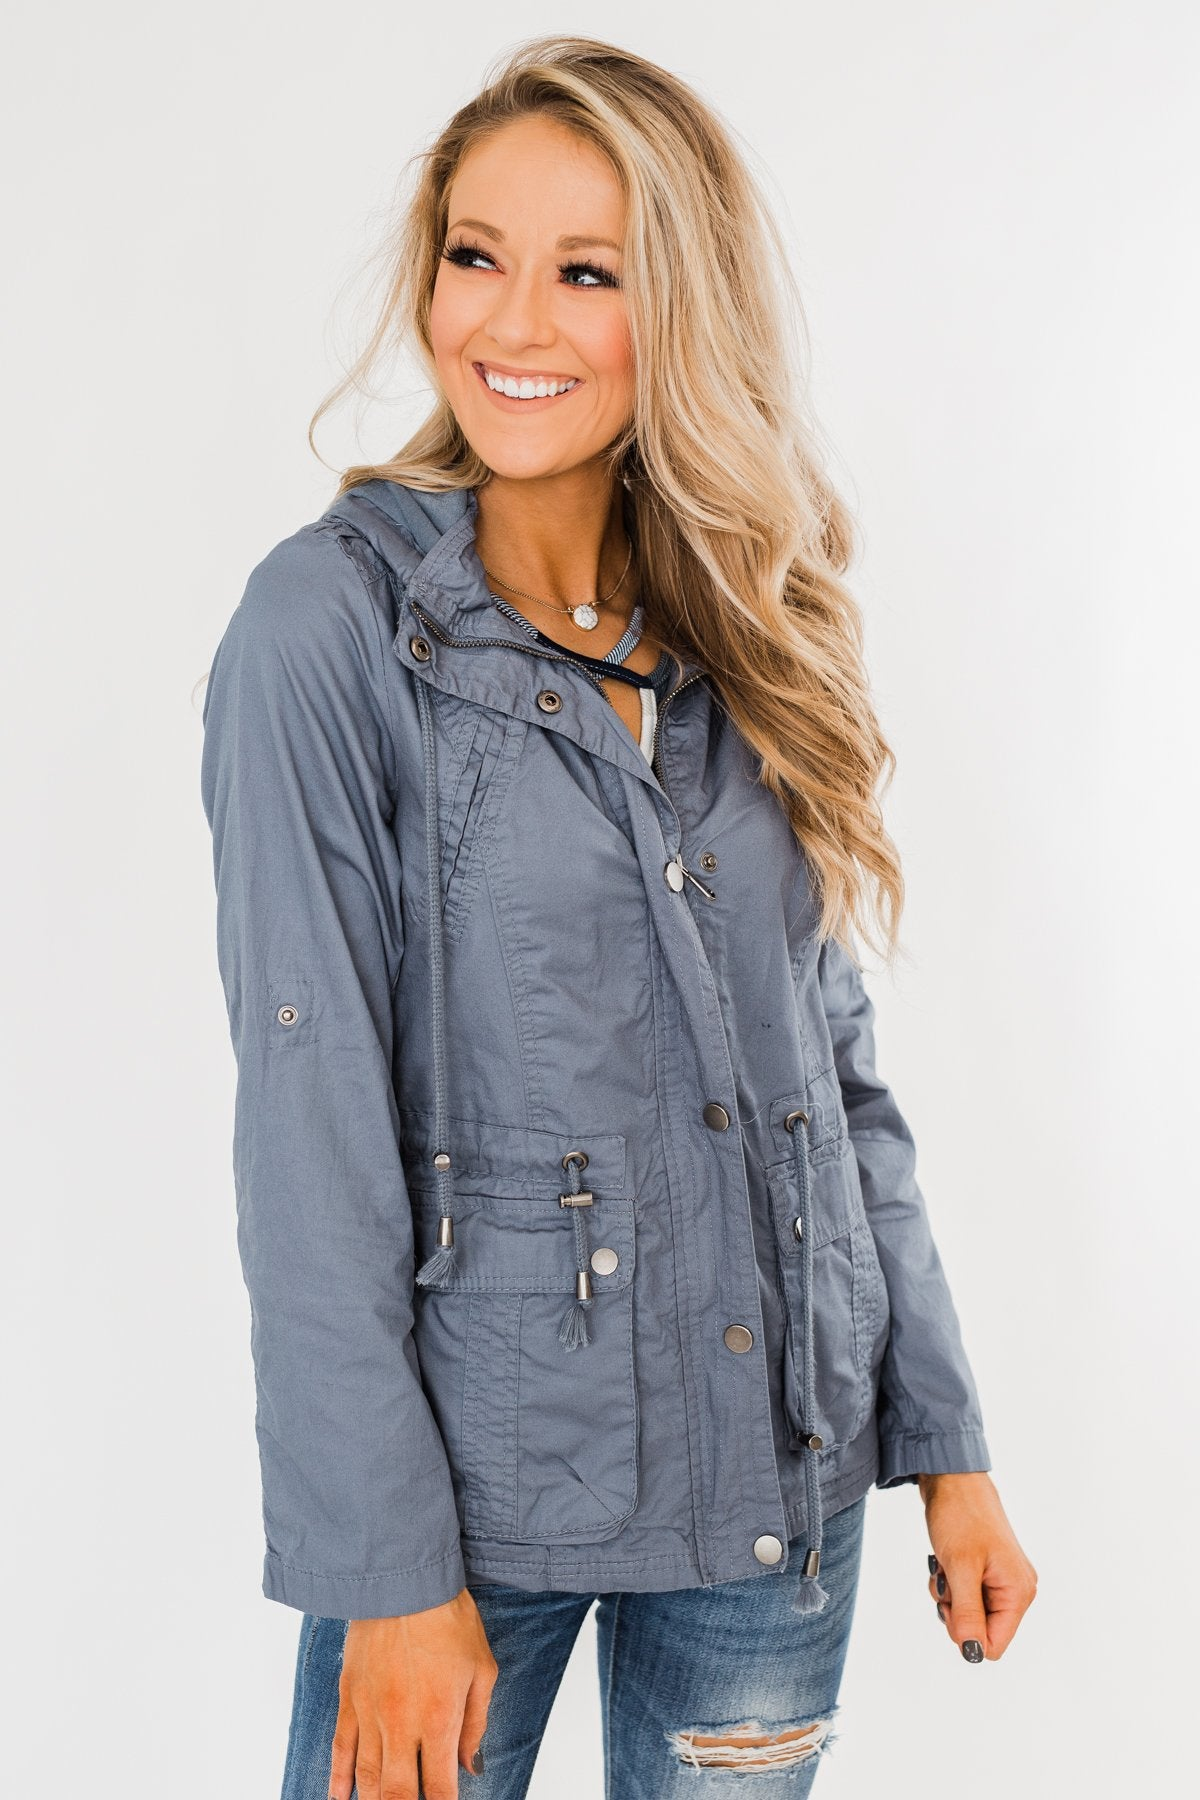 Walk With Me Cinch Jacket- Slate Blue